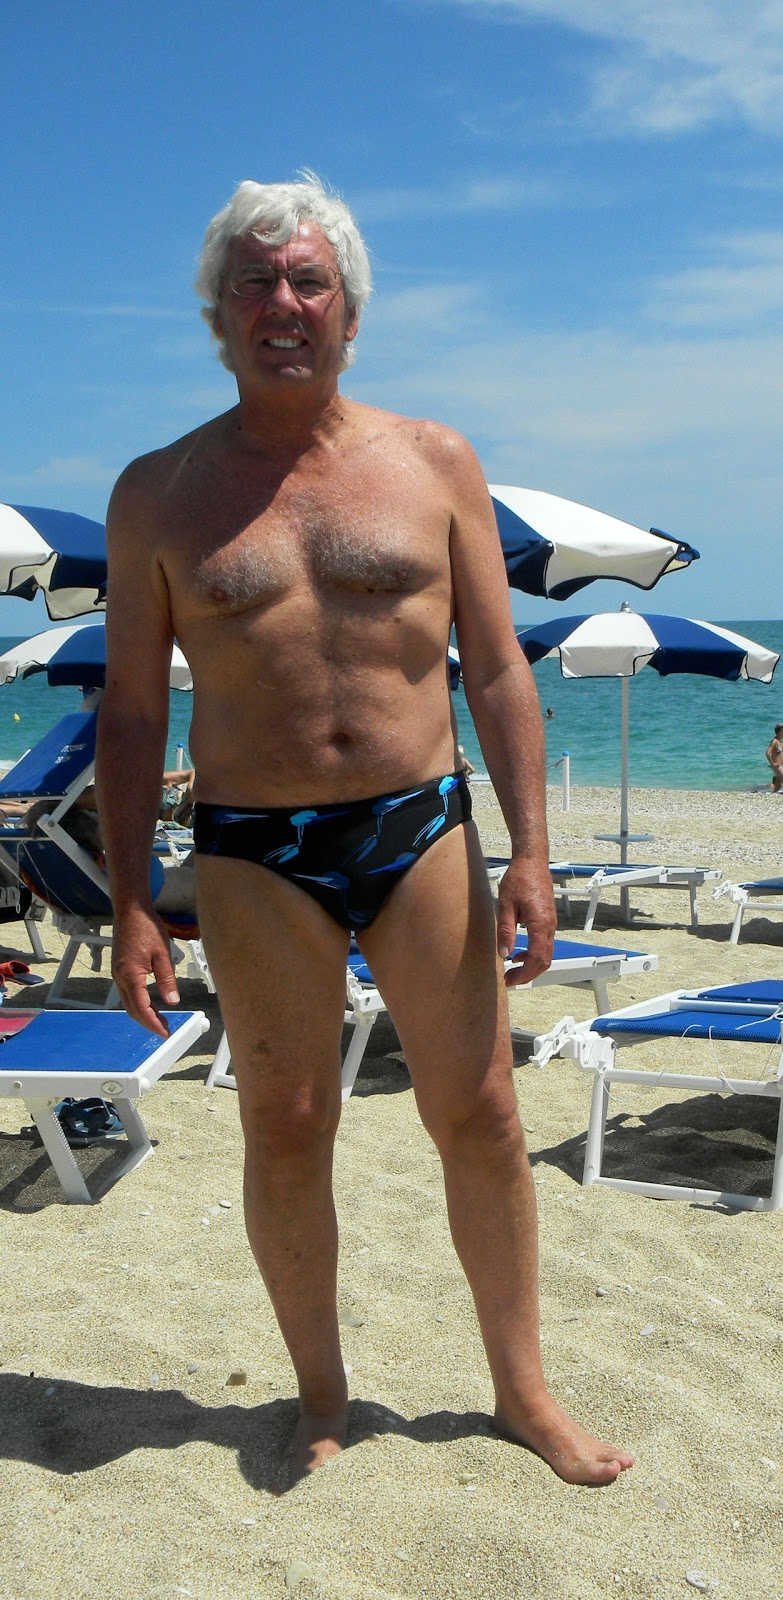 how to wear speedo ear plugs for swimming